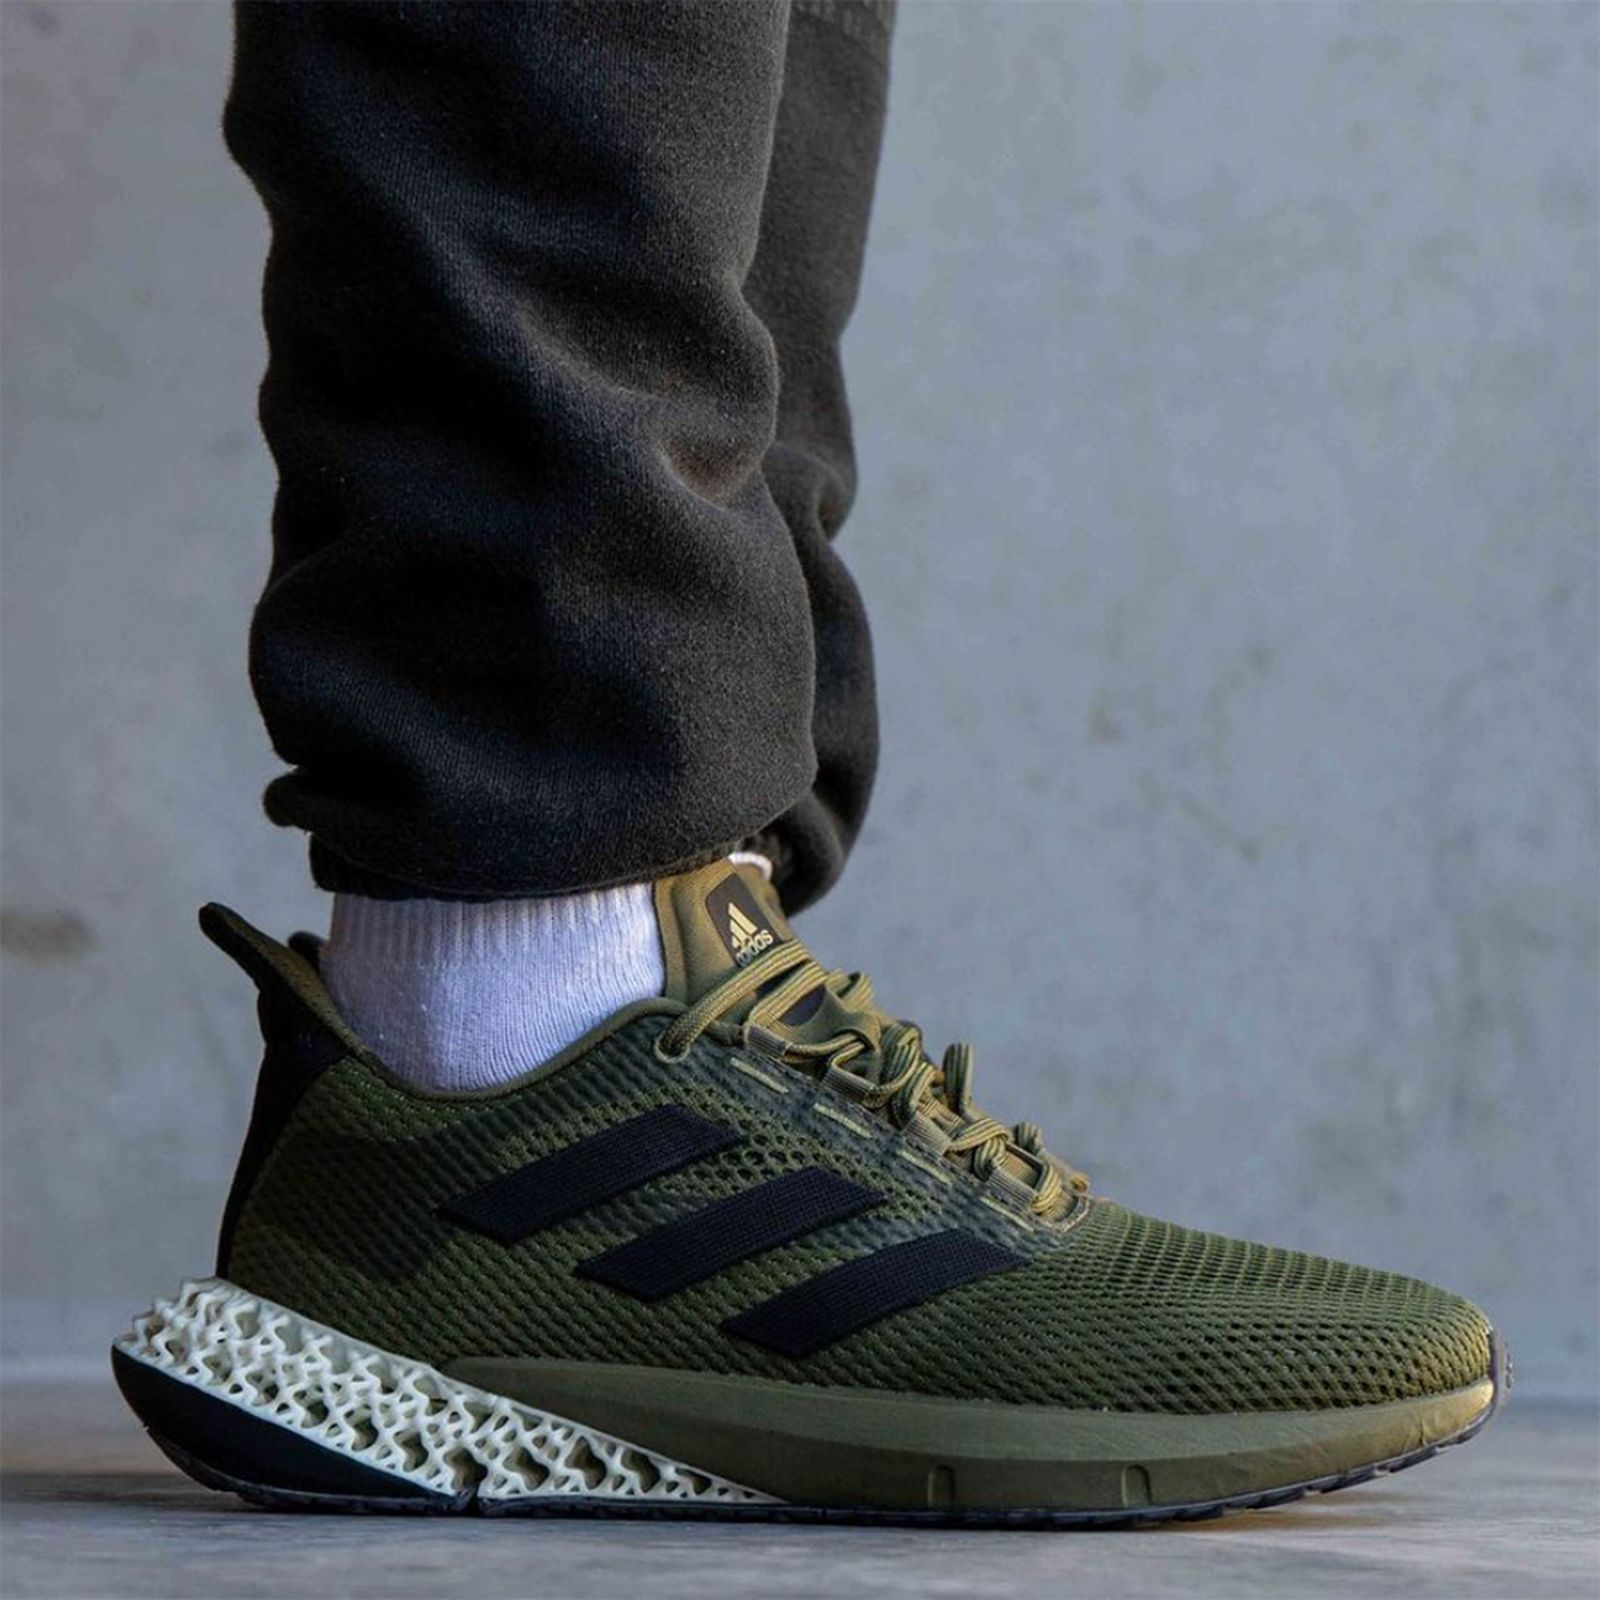 adidas-4d-kick-release-date-price-02